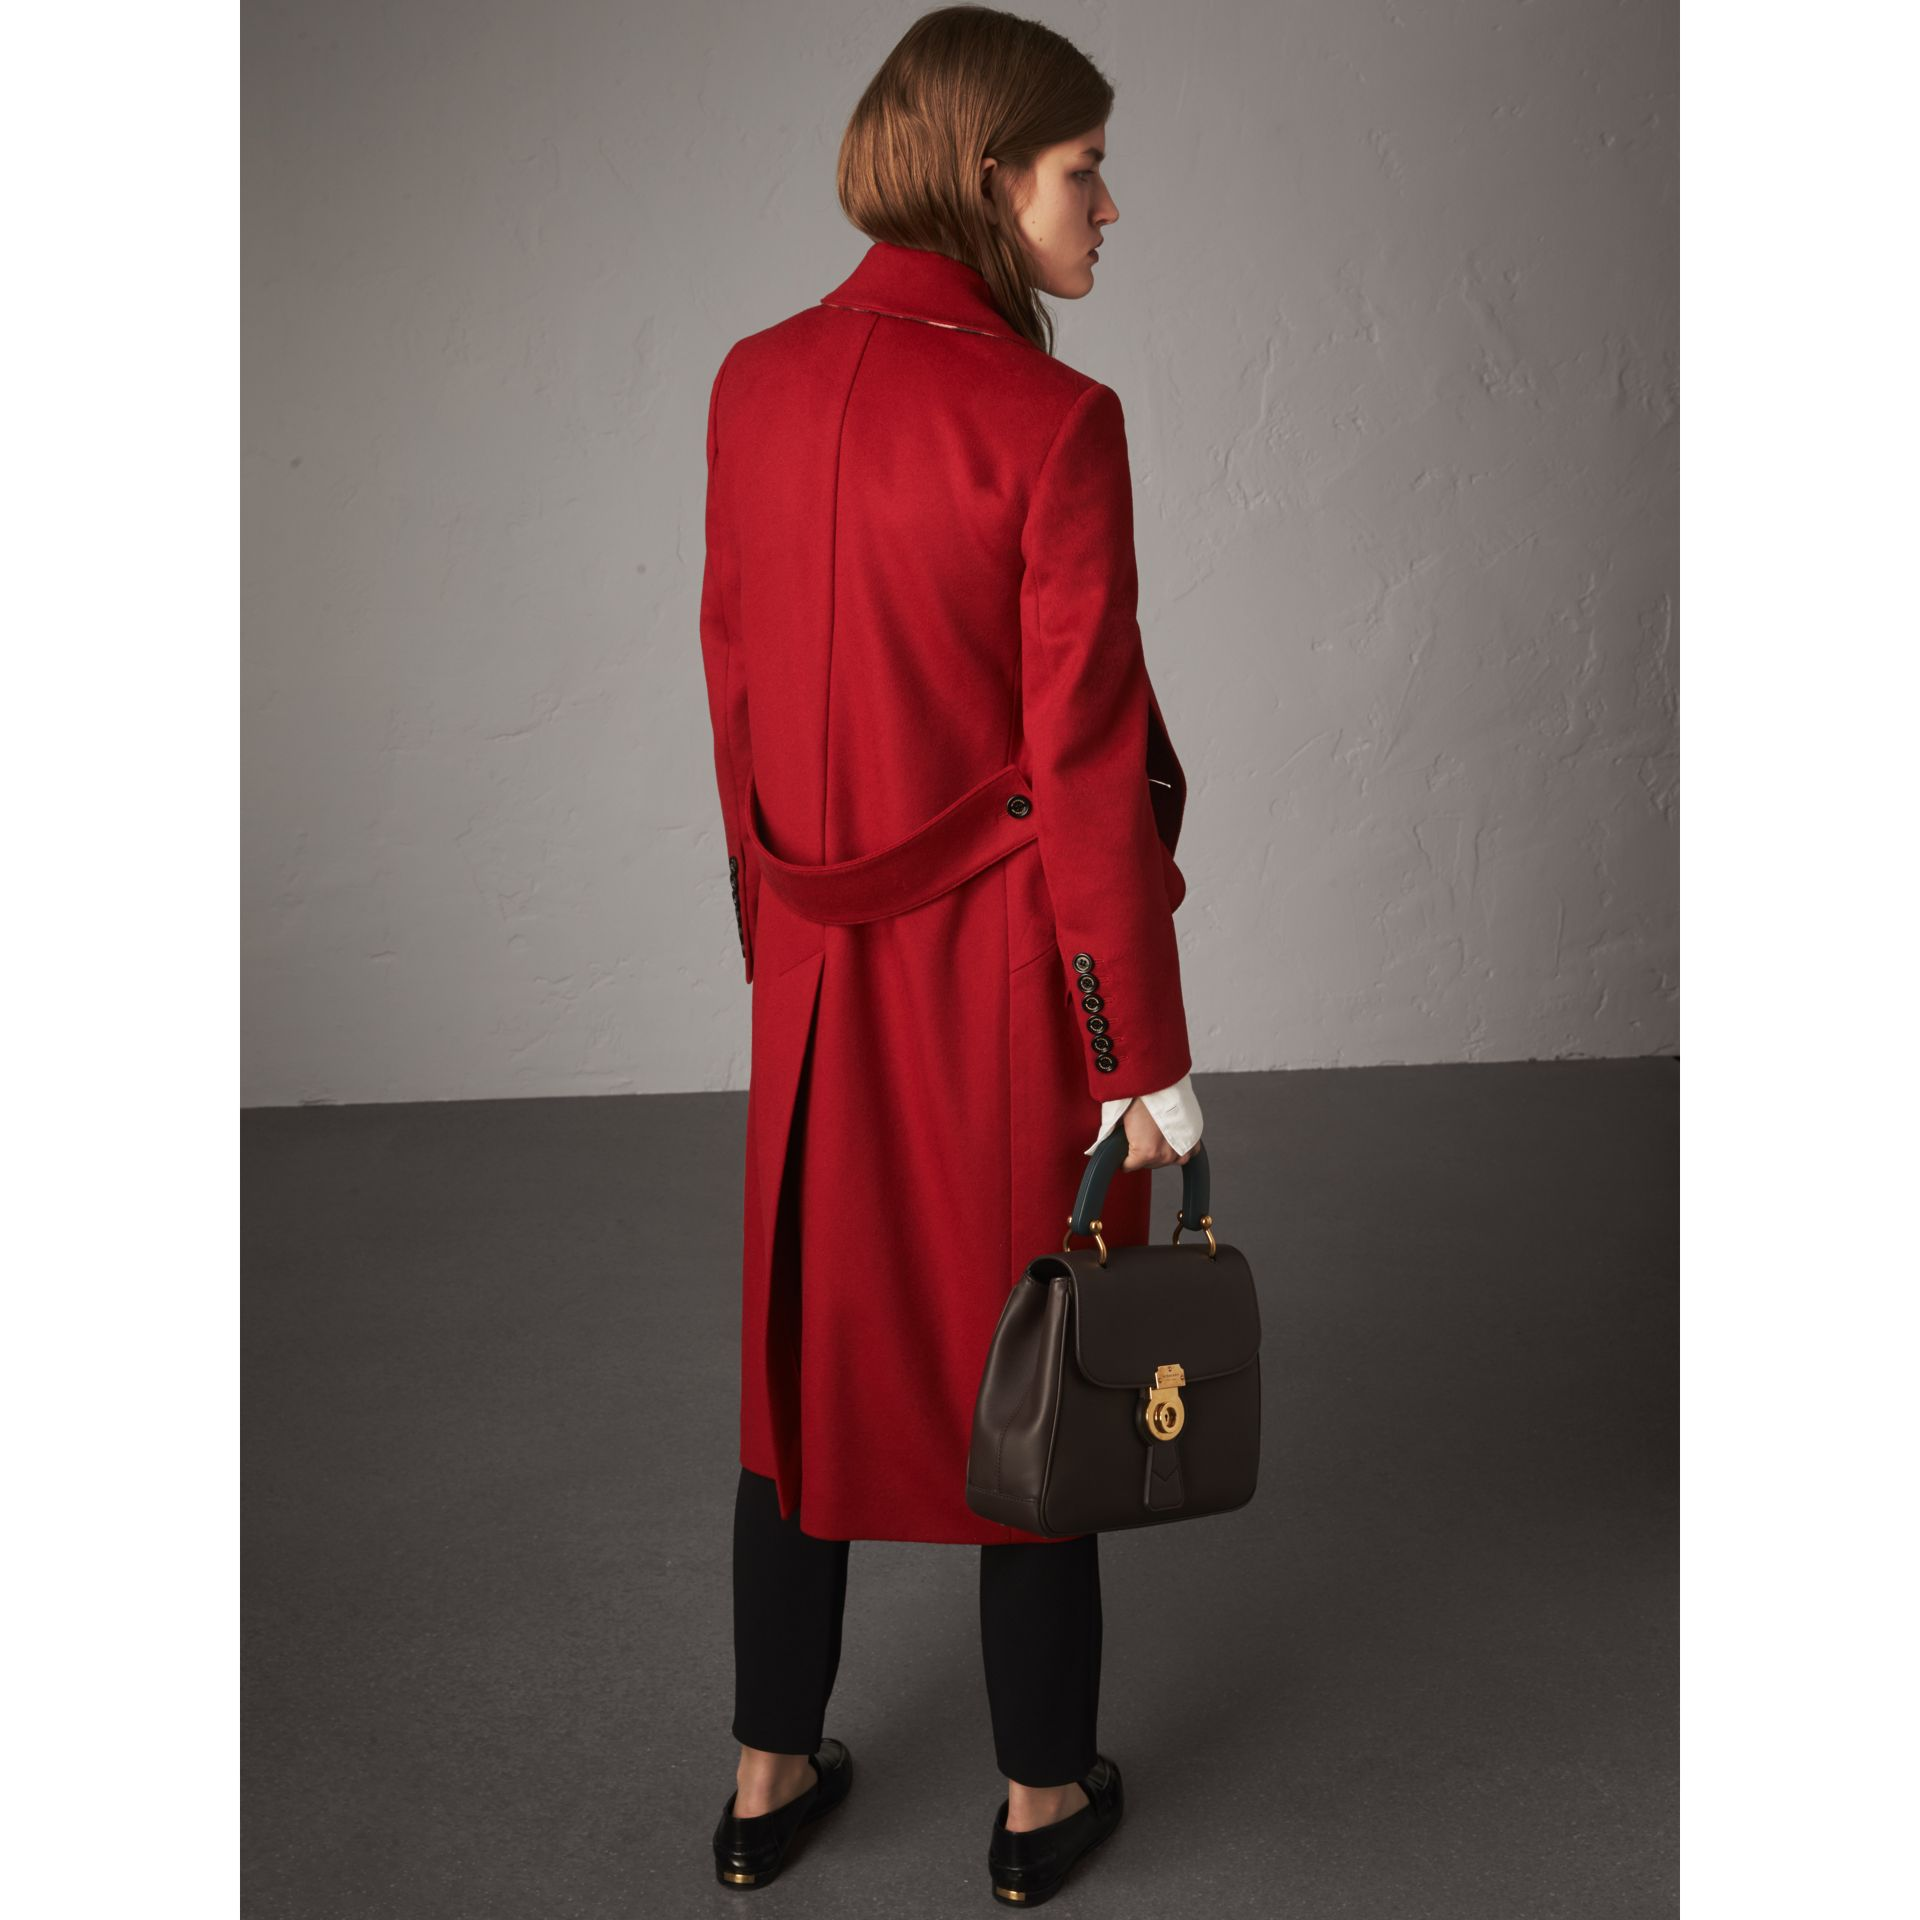 Ruffle Detail Wool Cashmere Tailored Coat in Military Red - Women | Burberry Australia - gallery image 3